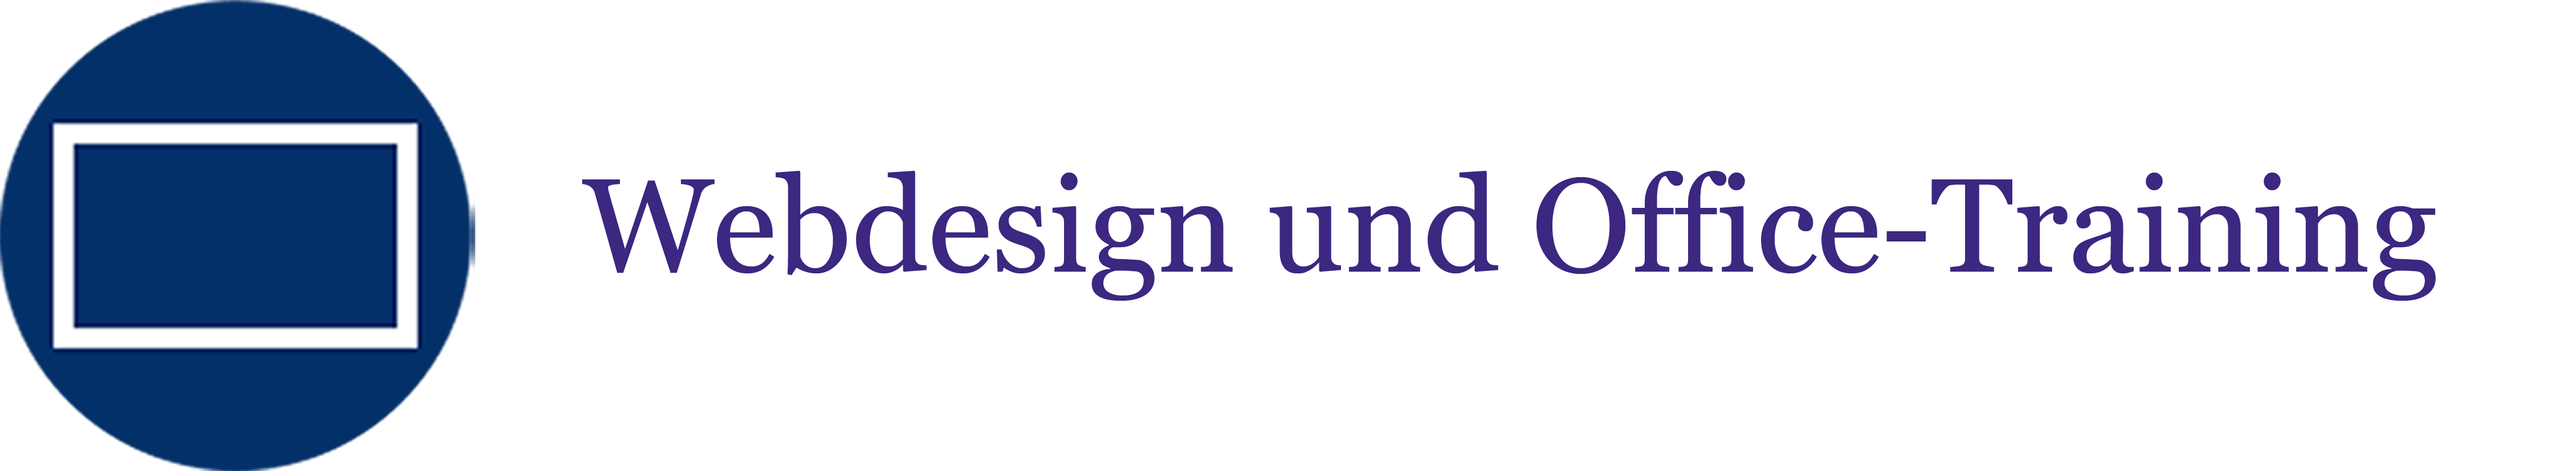 Webdesign und Office-Training